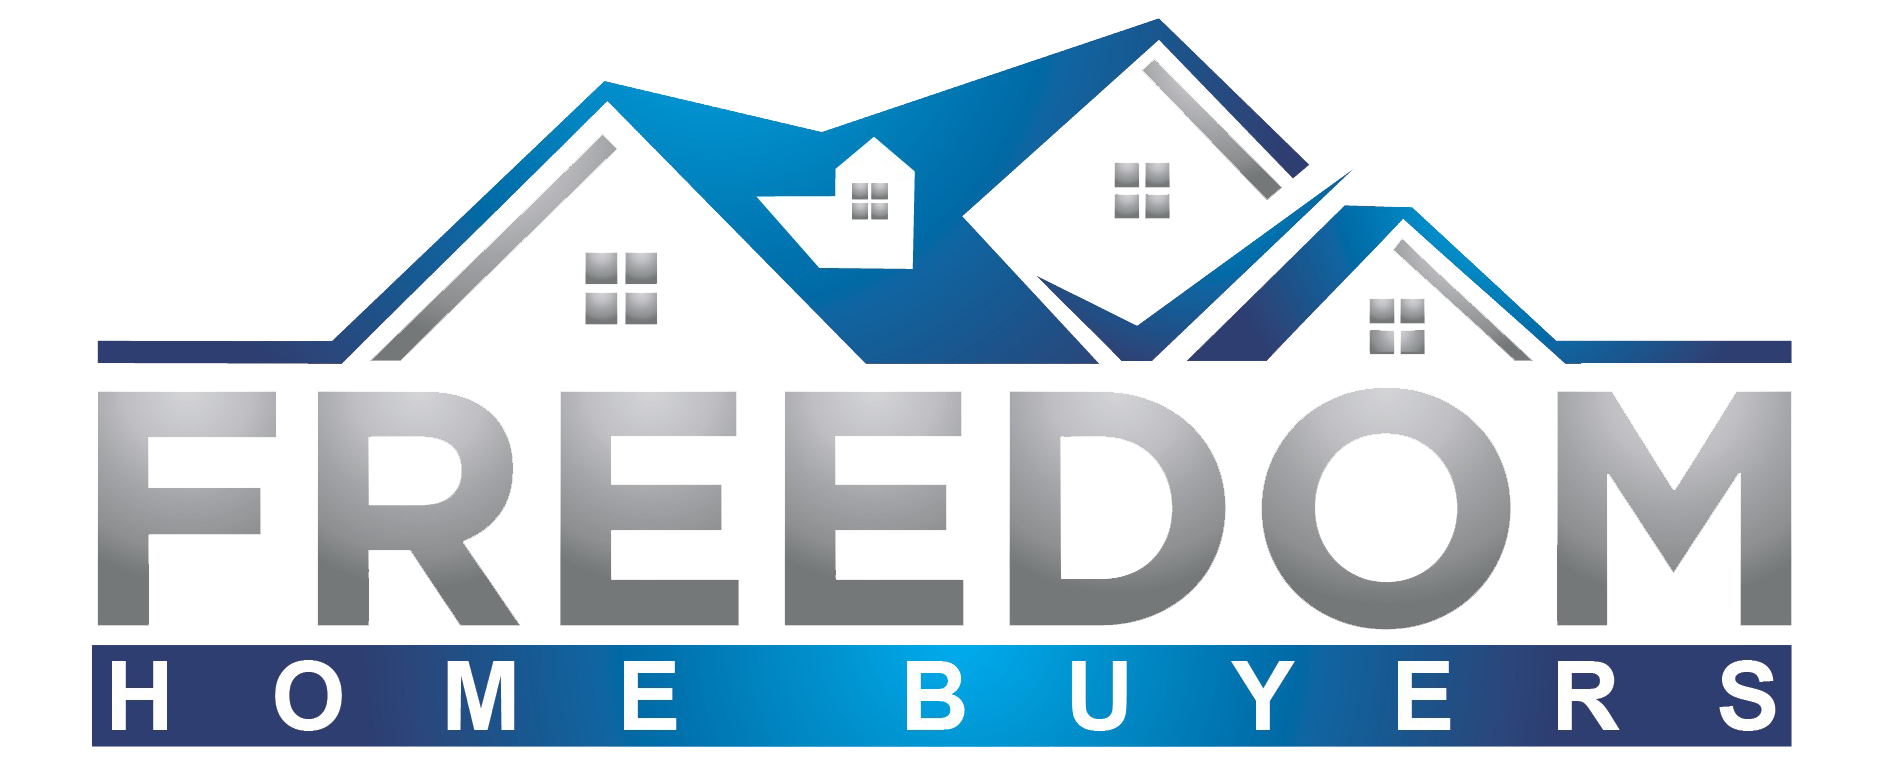 Freedom Home Buyers